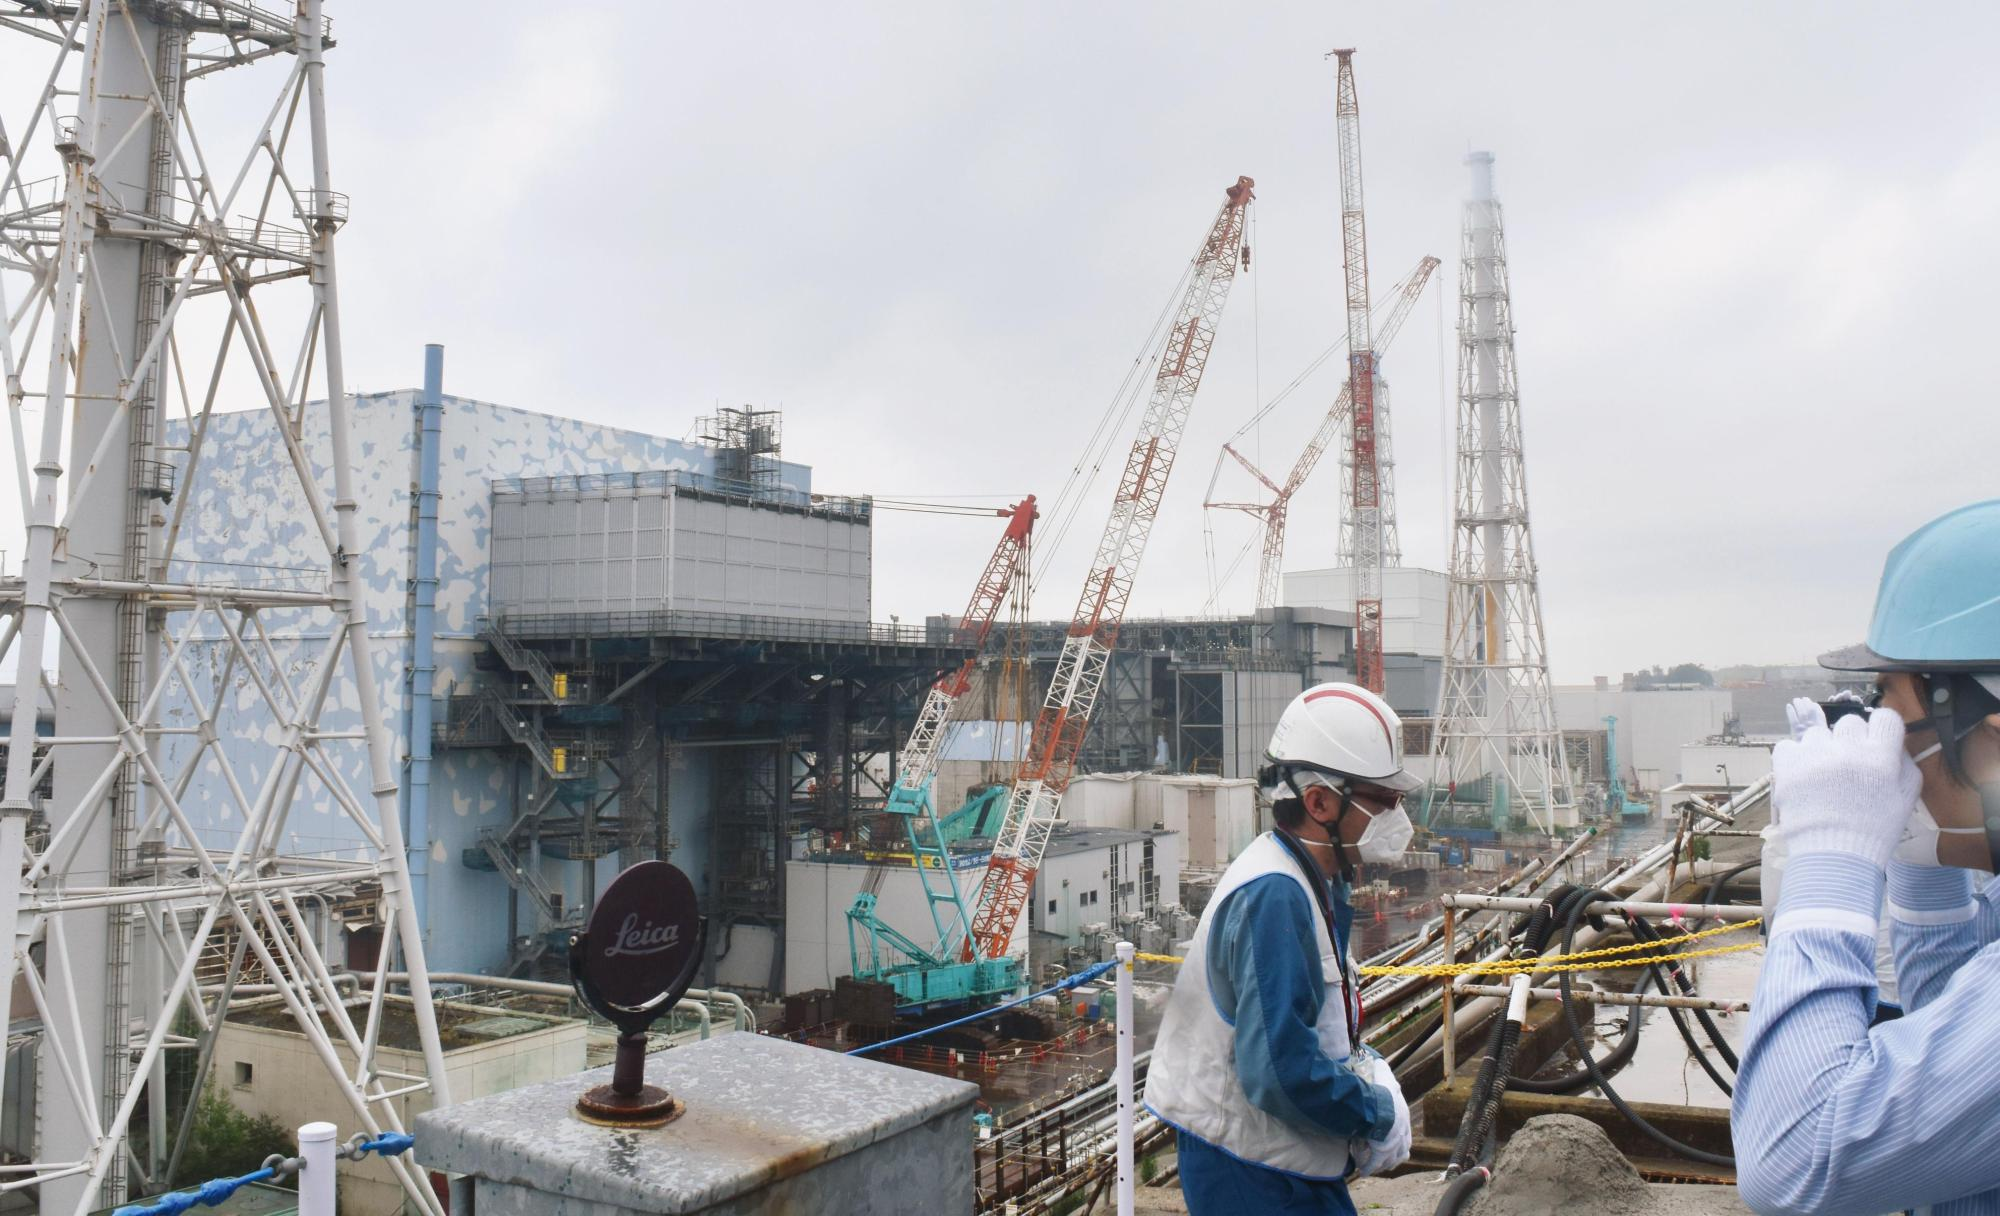 Decommissioning work continues at the Fukushima No. 1 nuclear power plant owned by Tokyo Electric Power Company Holdings. | KYODO